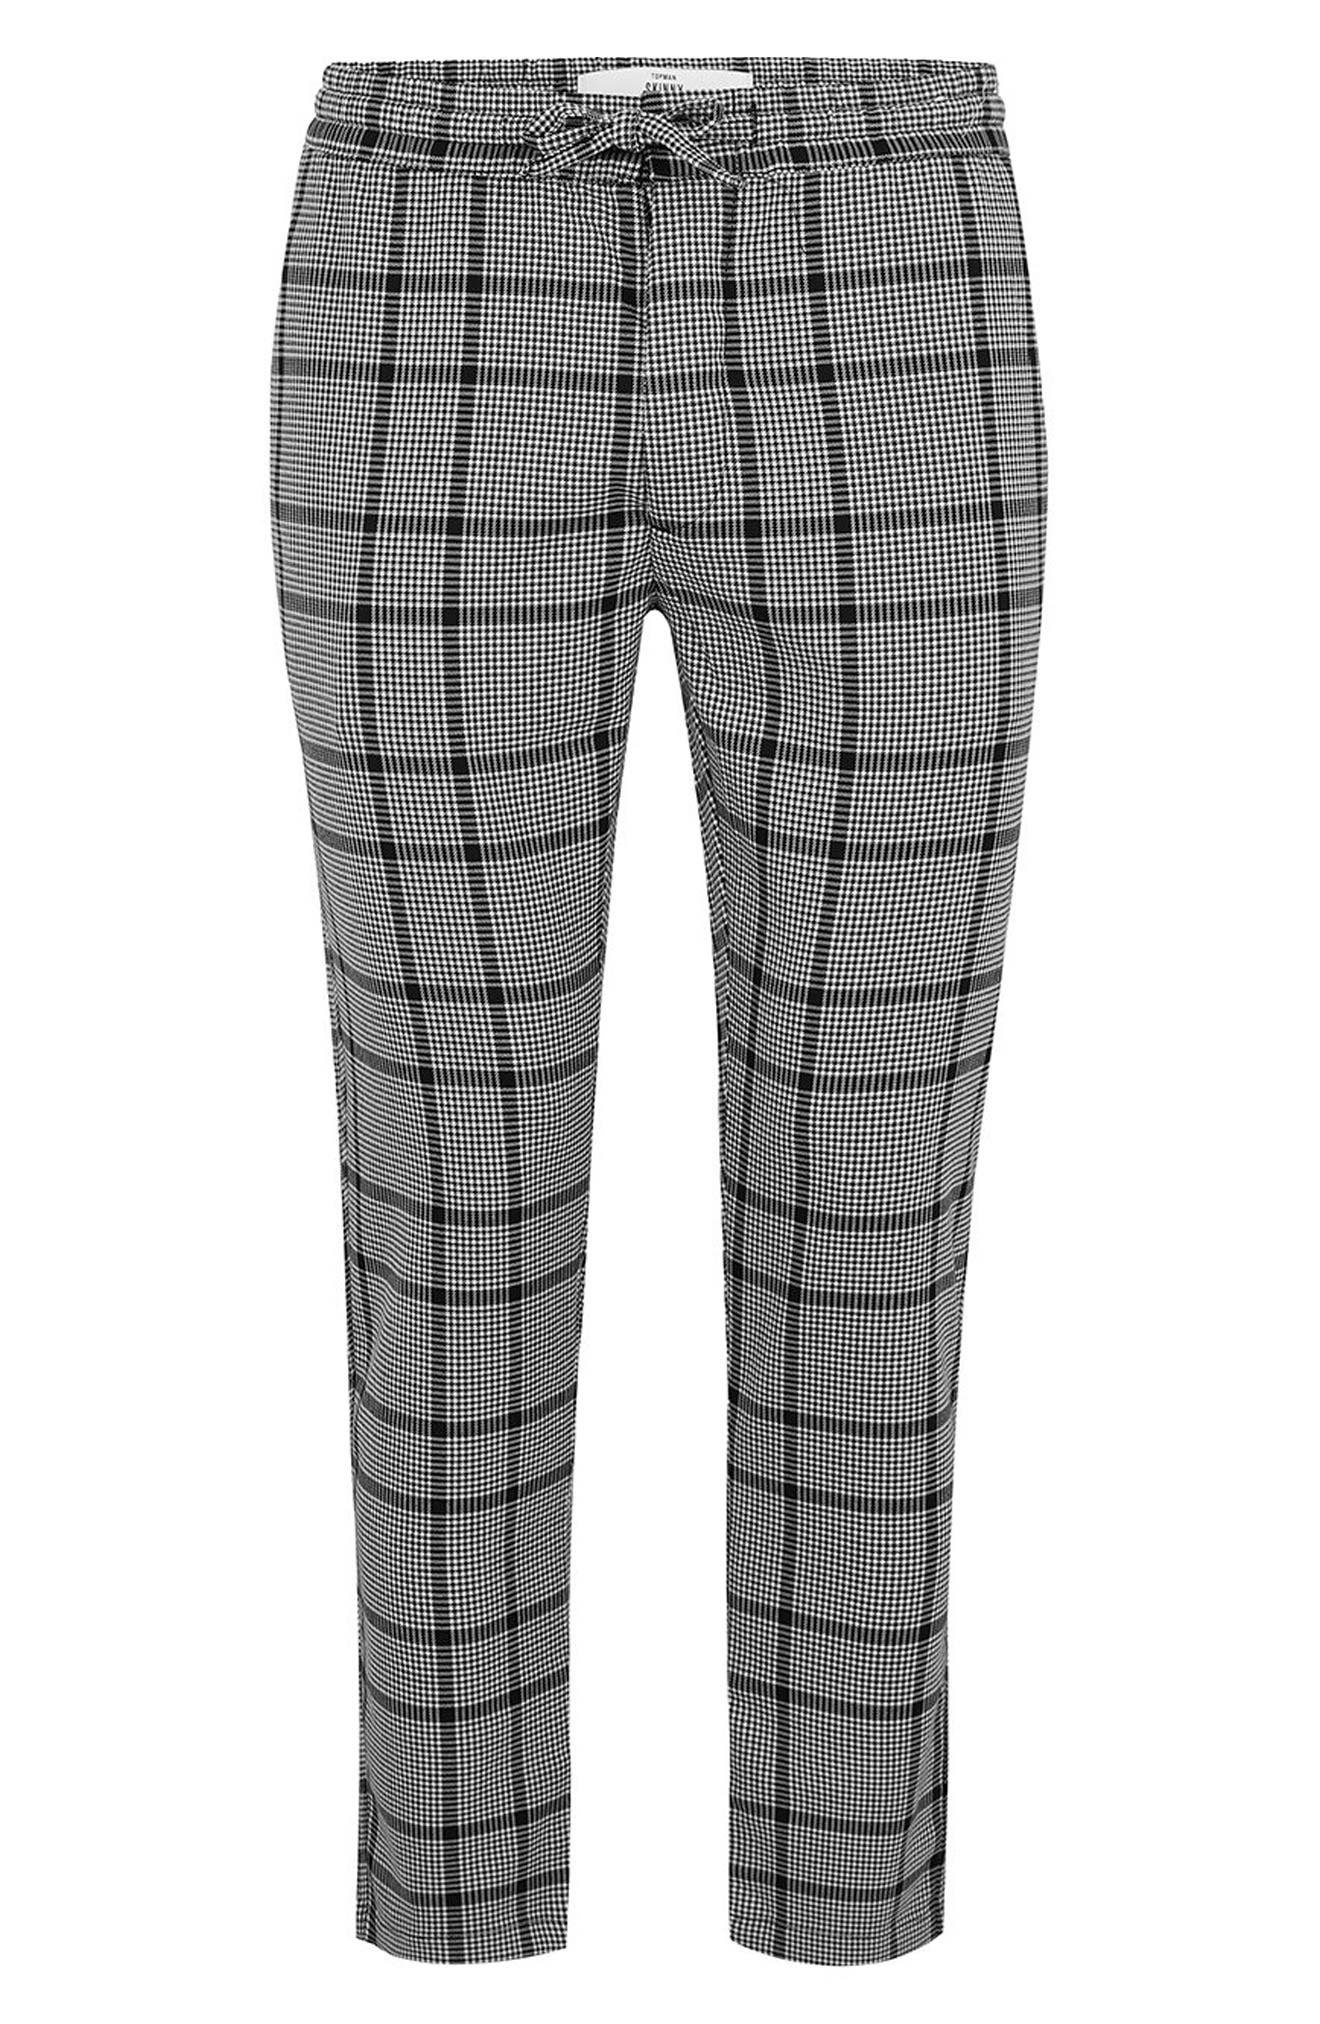 Dogtooth Check Woven Jogger Pants,                             Alternate thumbnail 4, color,                             GREY MULTI